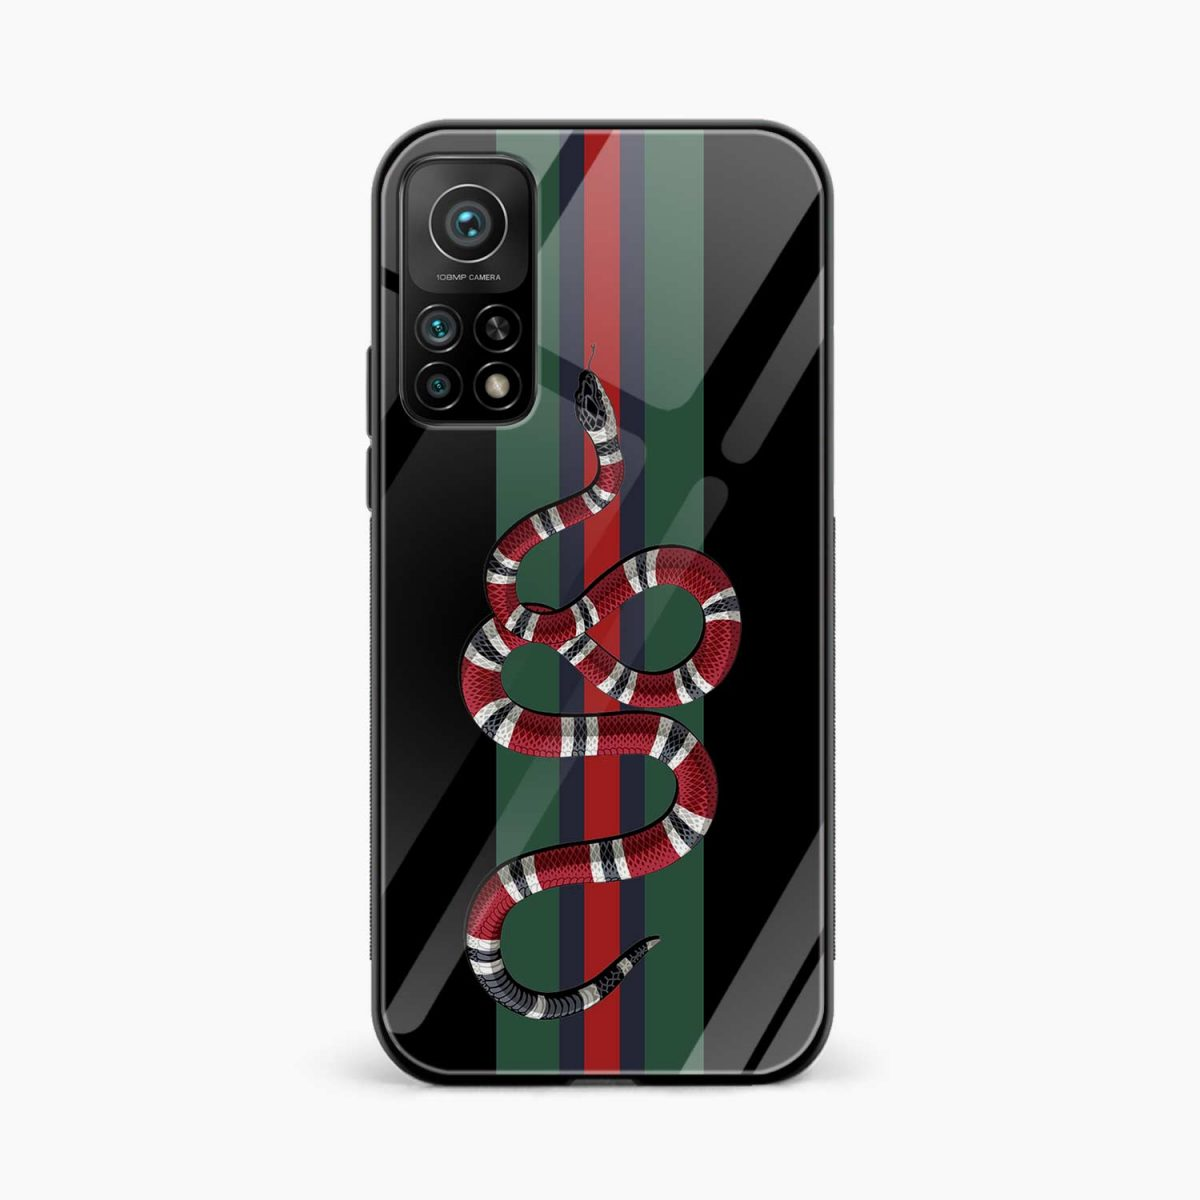 gucci snake with strips xiaomi mi 10t pro back cover front view